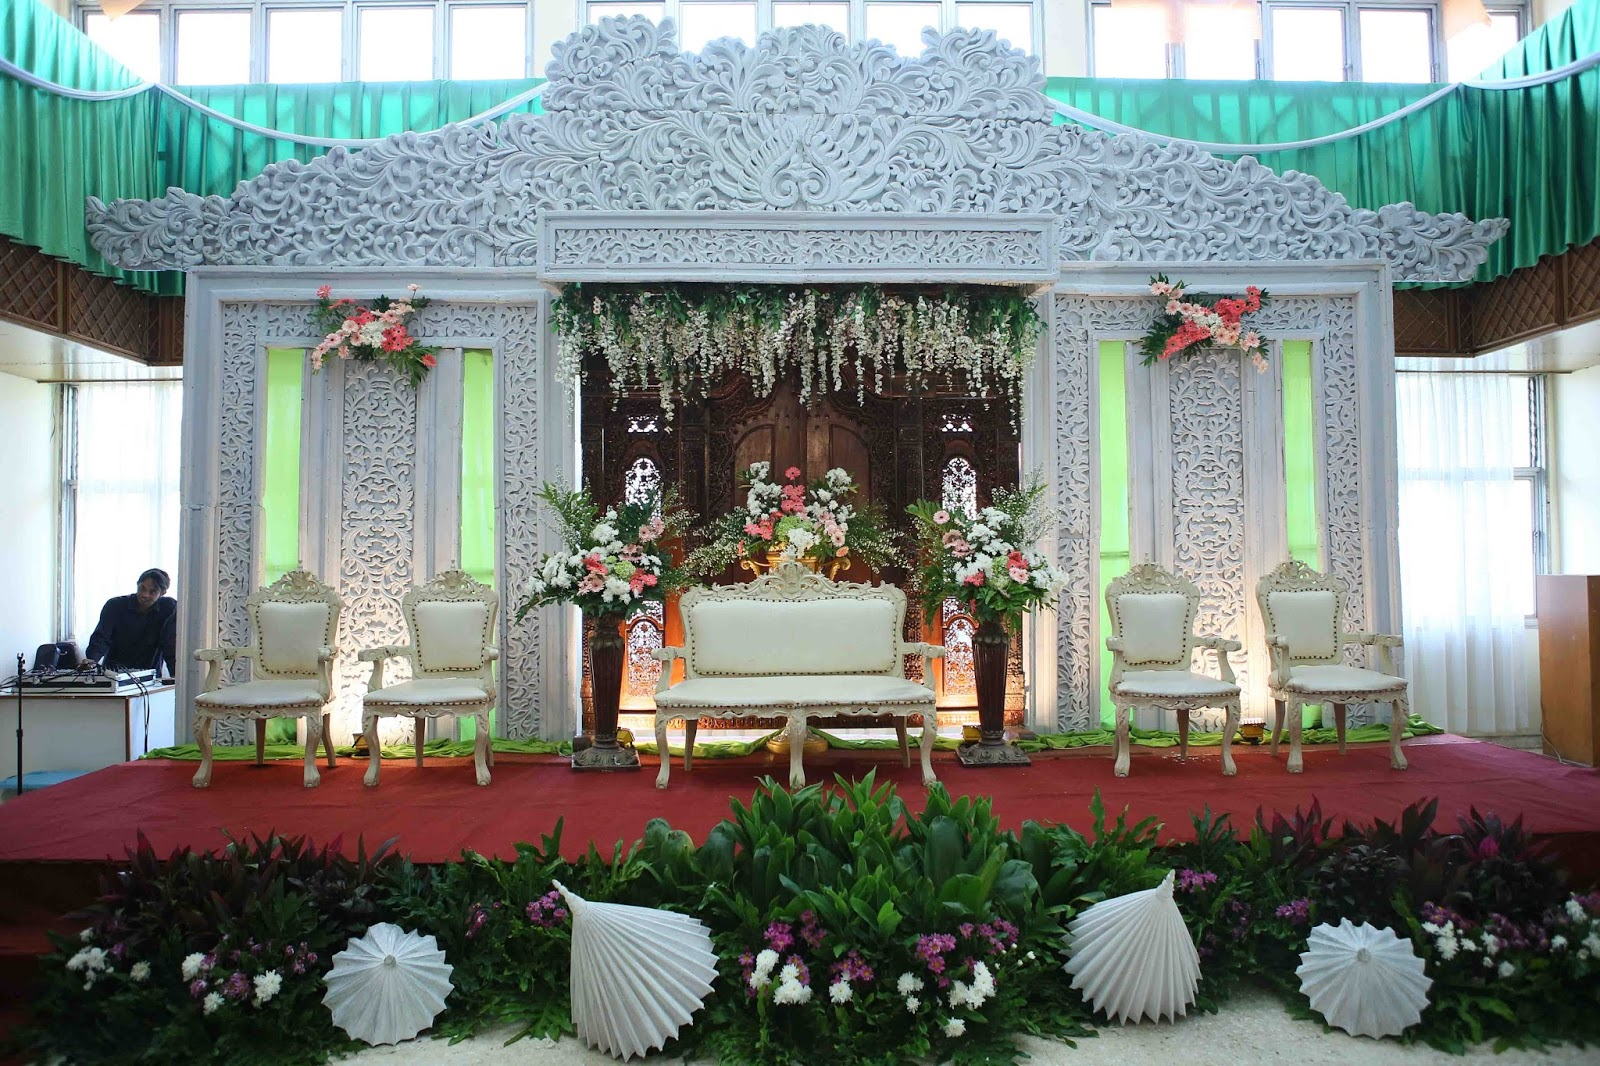 Wedding decoration bogor image collections wedding dress wedding decoration di bogor images wedding dress decoration and harga wedding decoration bogor choice image wedding junglespirit Image collections